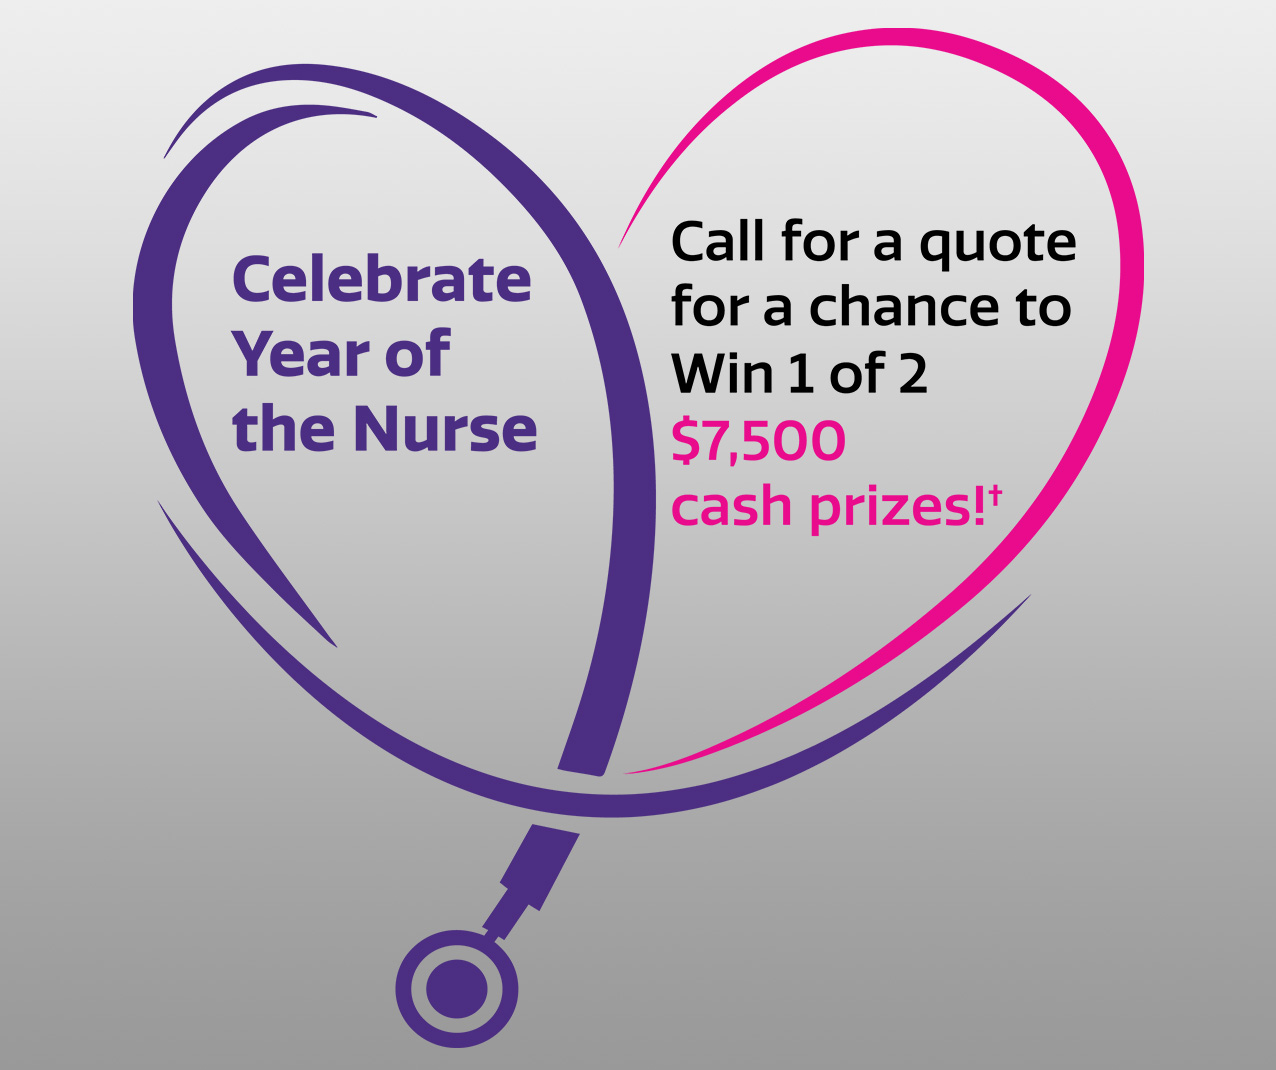 Celebrate the Year of the Nurse